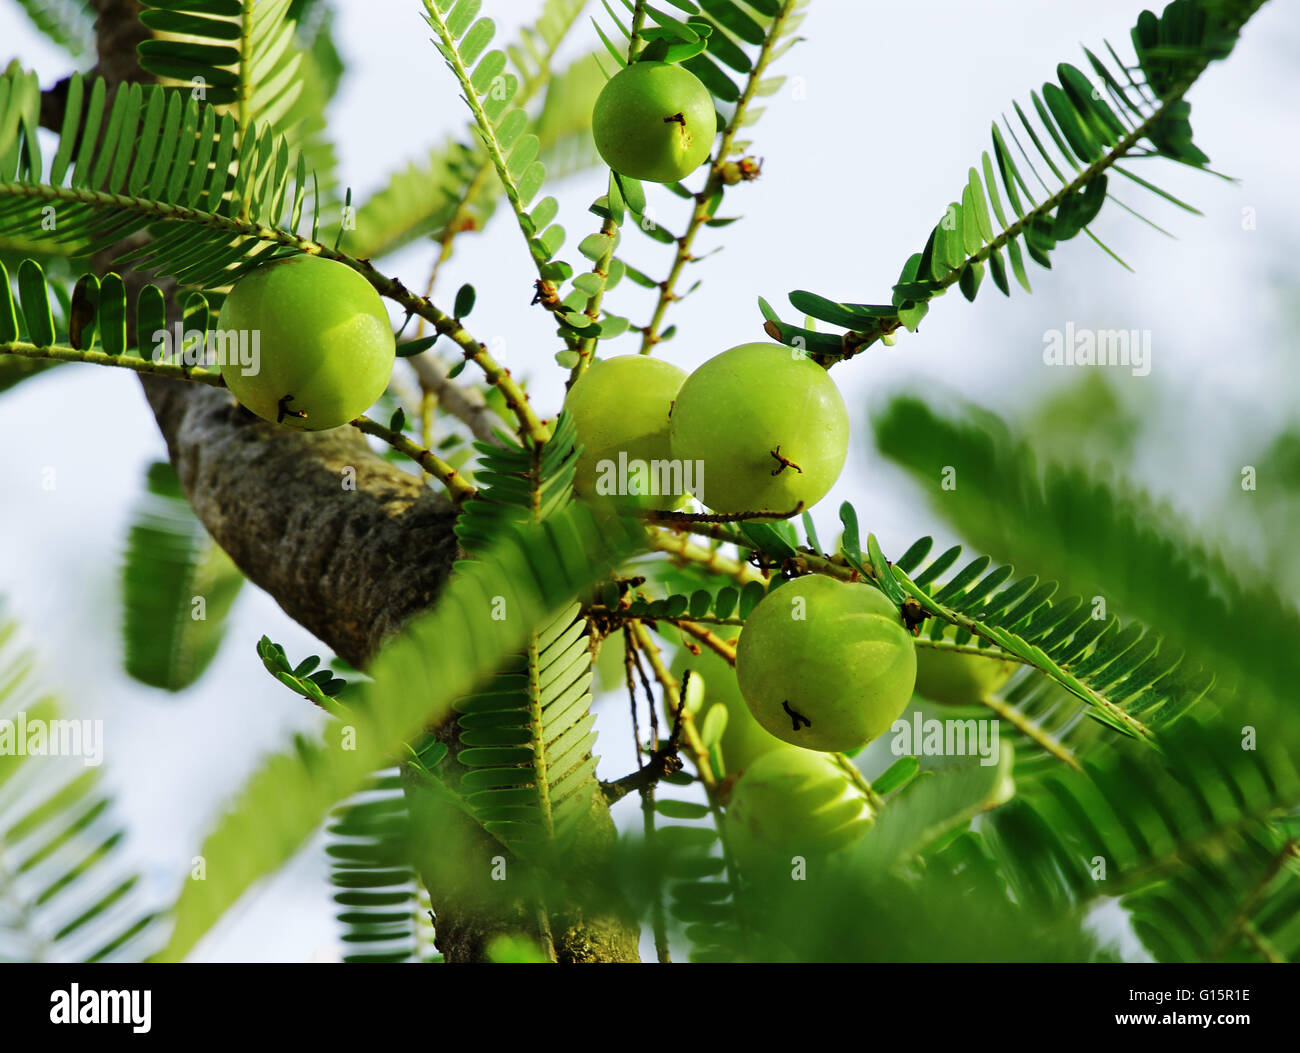 Indian gooseberry, Phyllanthus emblica, in tree. An essential ingredient of Indian Ayurvedic (herbal) medicines. - Stock Image